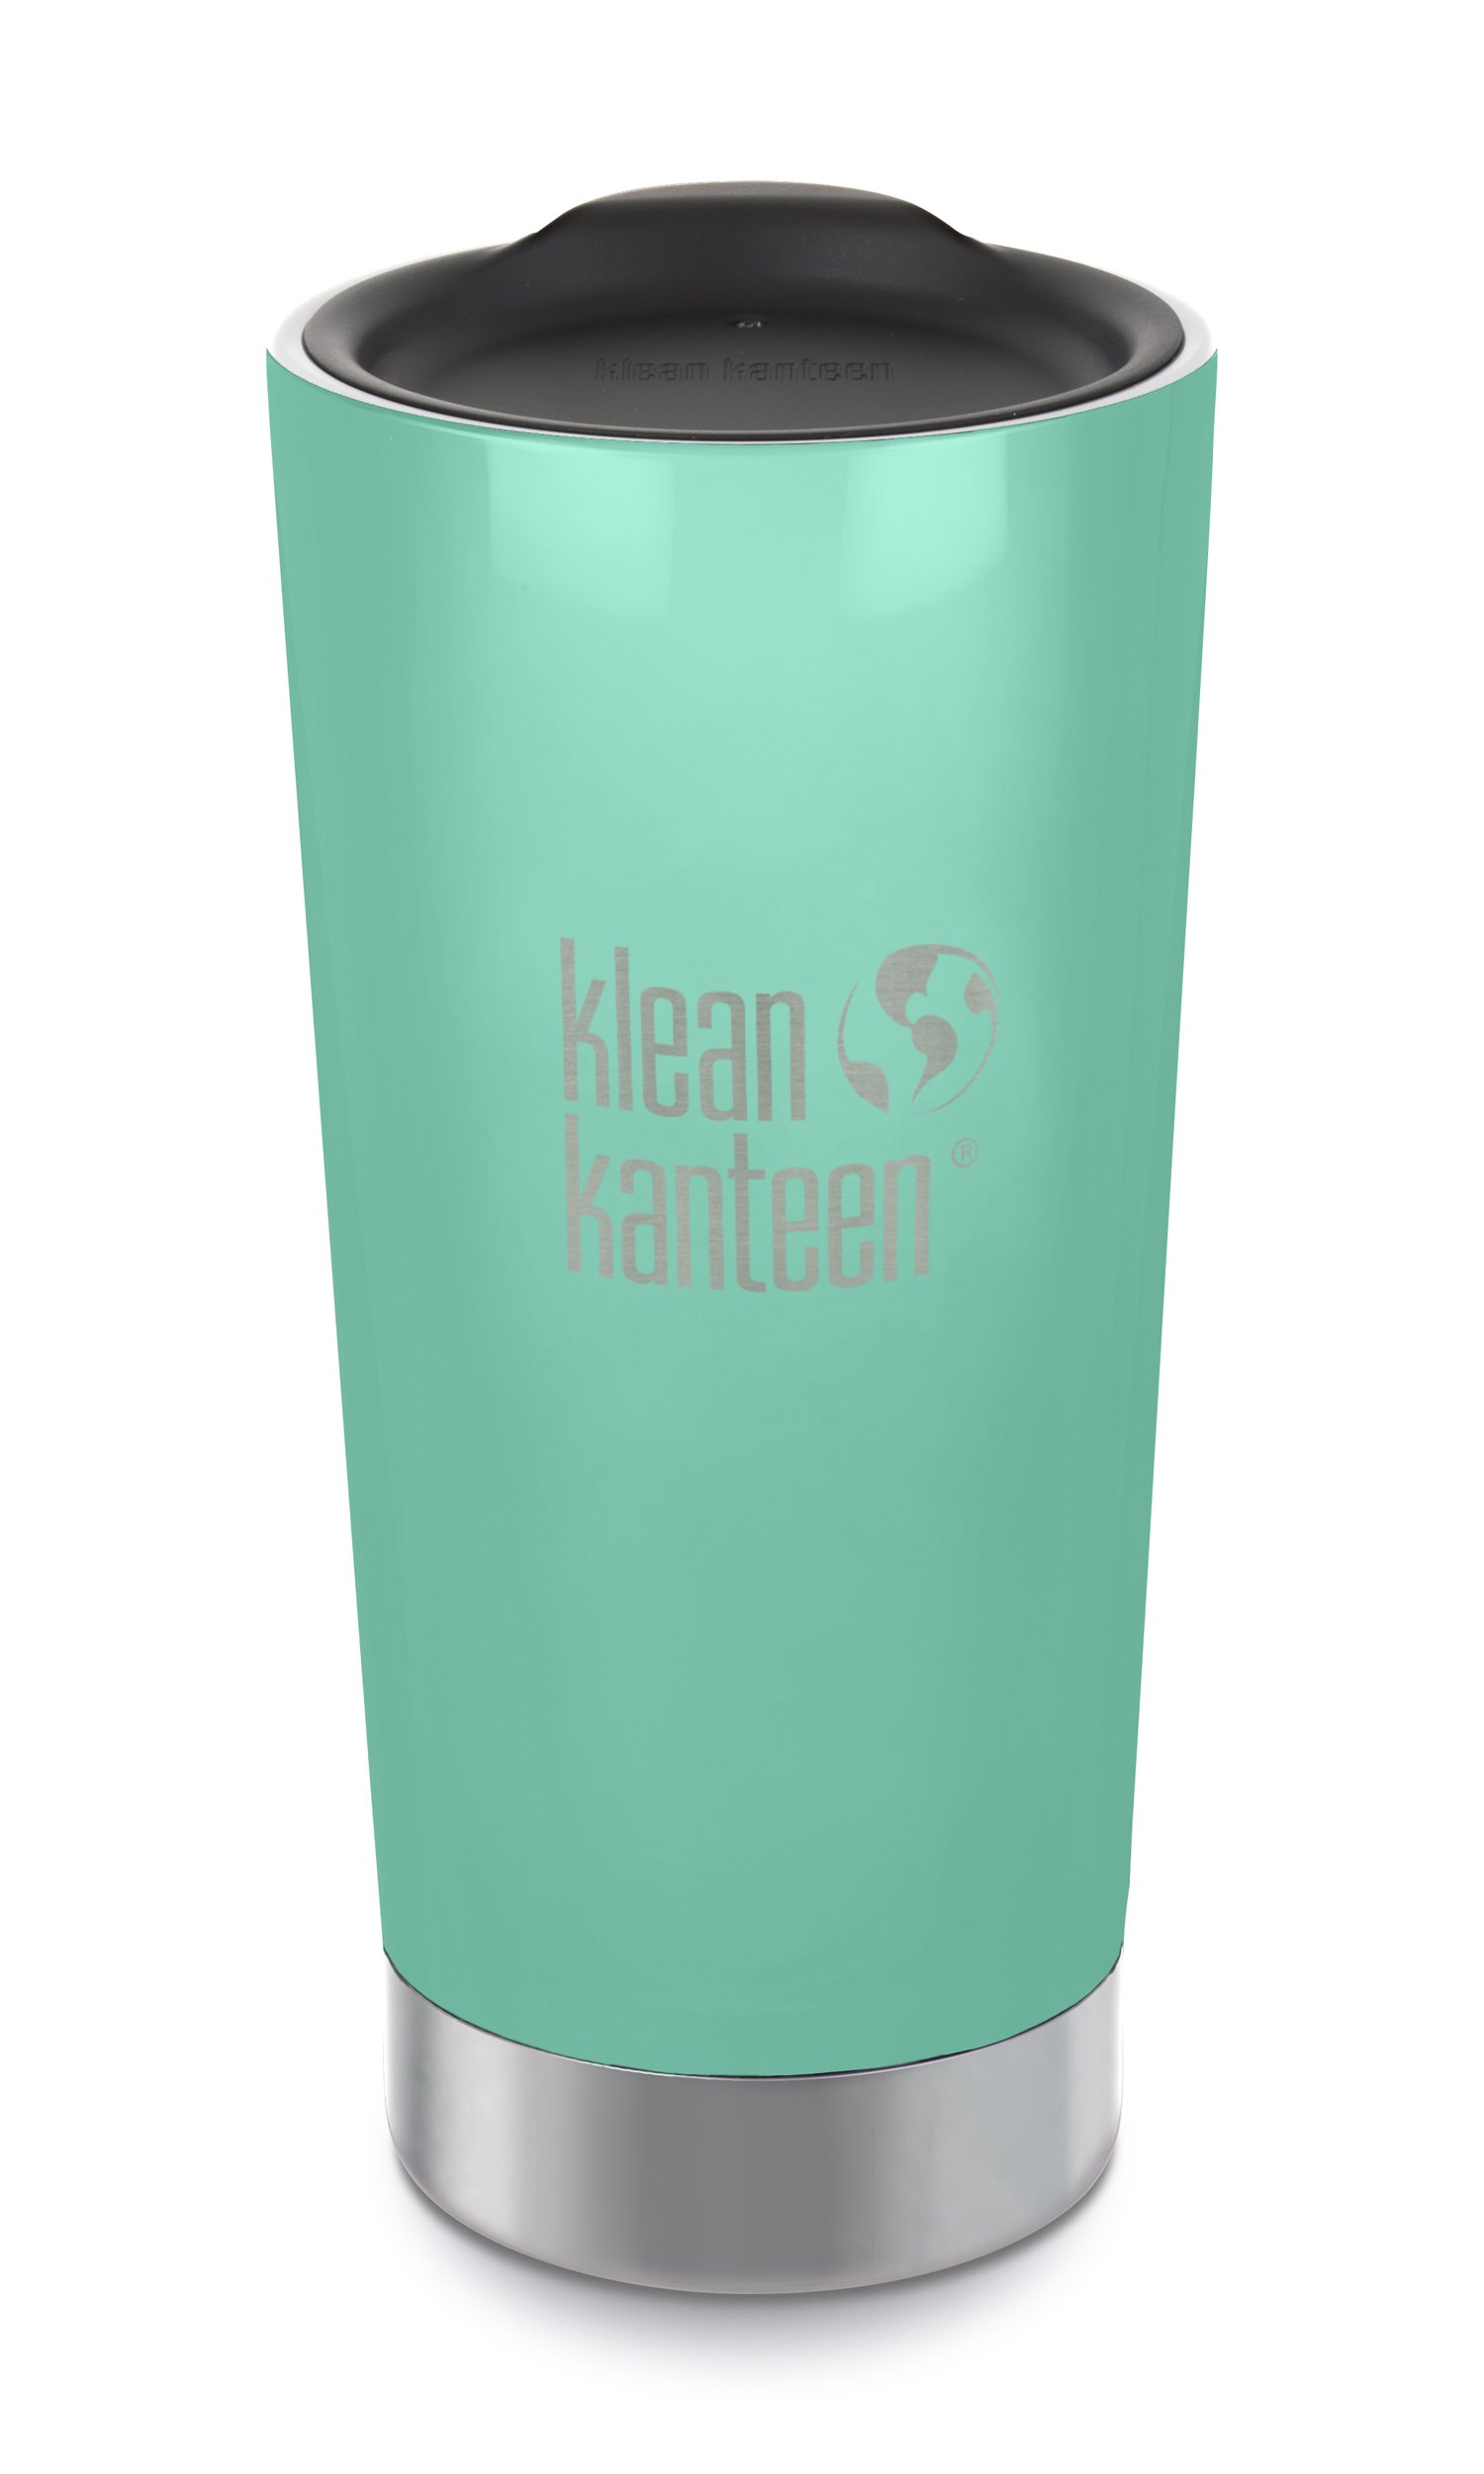 Klean Kanteen 20oz Stainless Steel Tumbler Cup with Klean Coat, Double Wall Vacuum Insulated and Lid - Sea Crest (New 2018)